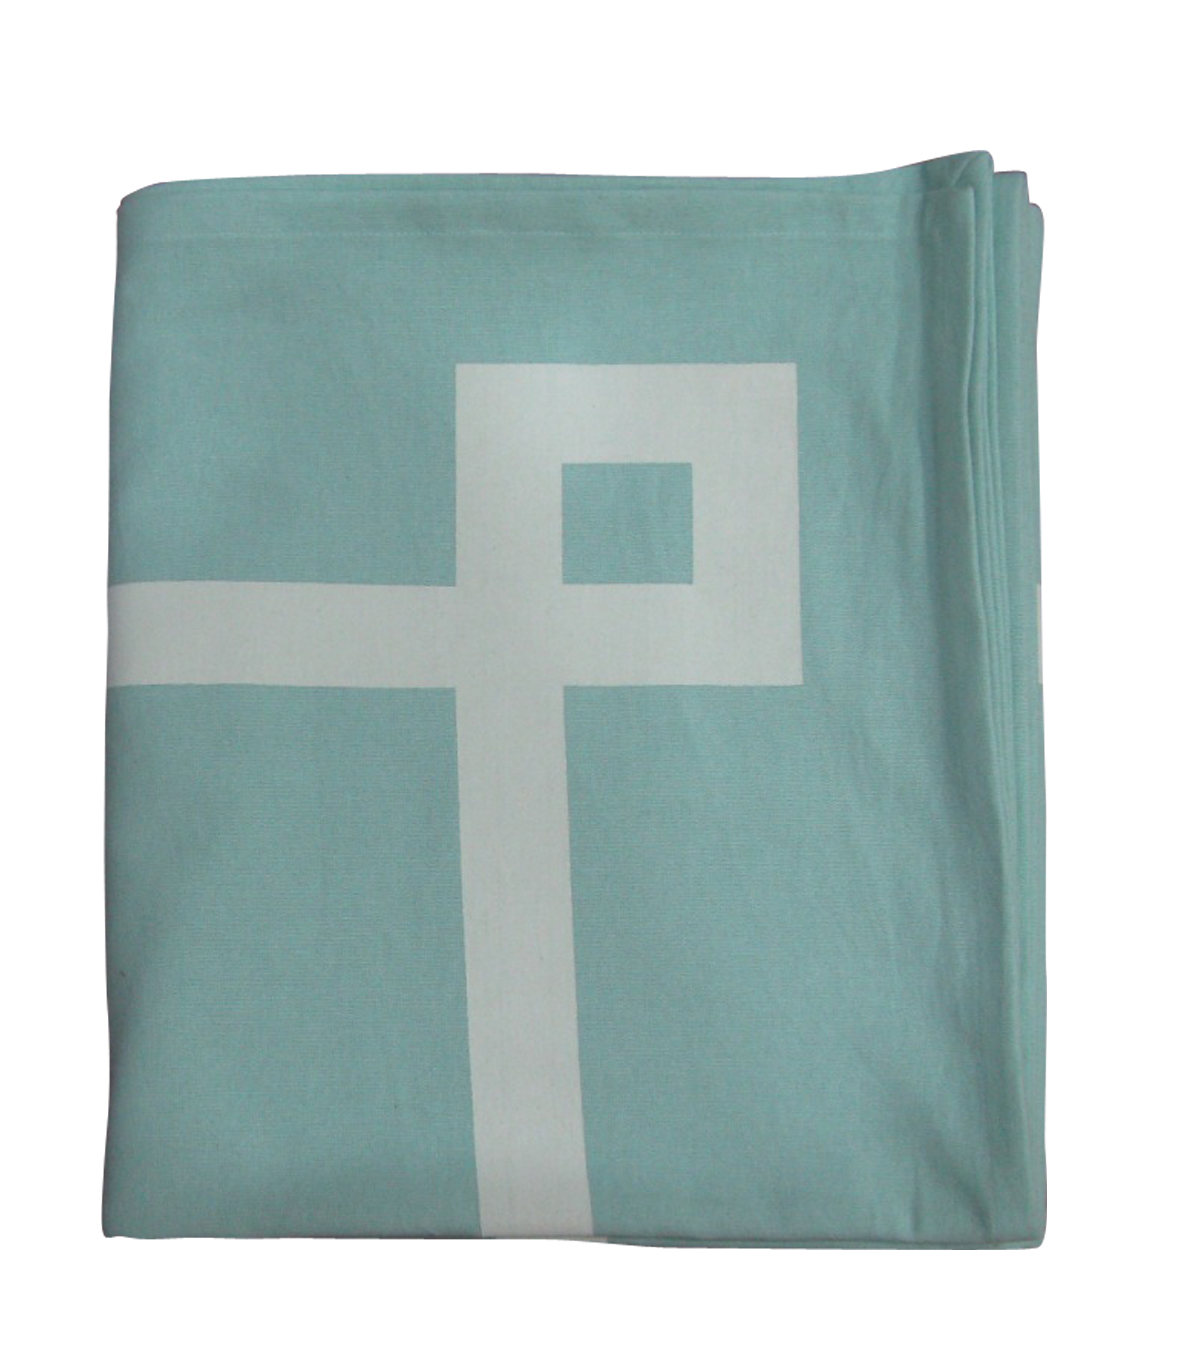 Easter 7\u0027x5\u0027 Rectangular Tablecloth-Blue With White Border